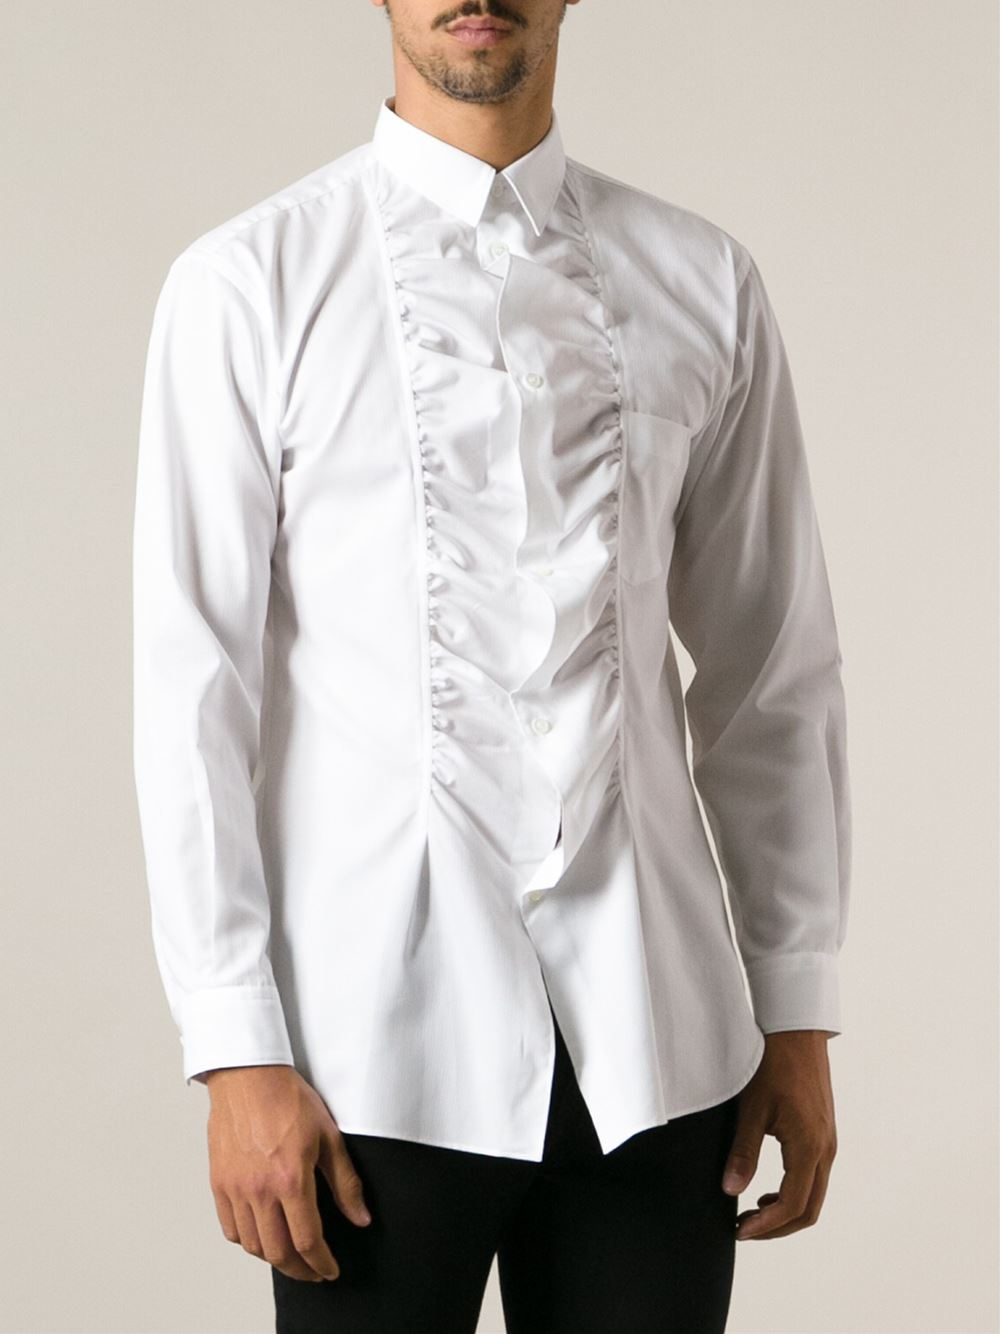 Comme des gar ons ruffled shirt in white for men lyst for Frilly shirts for men